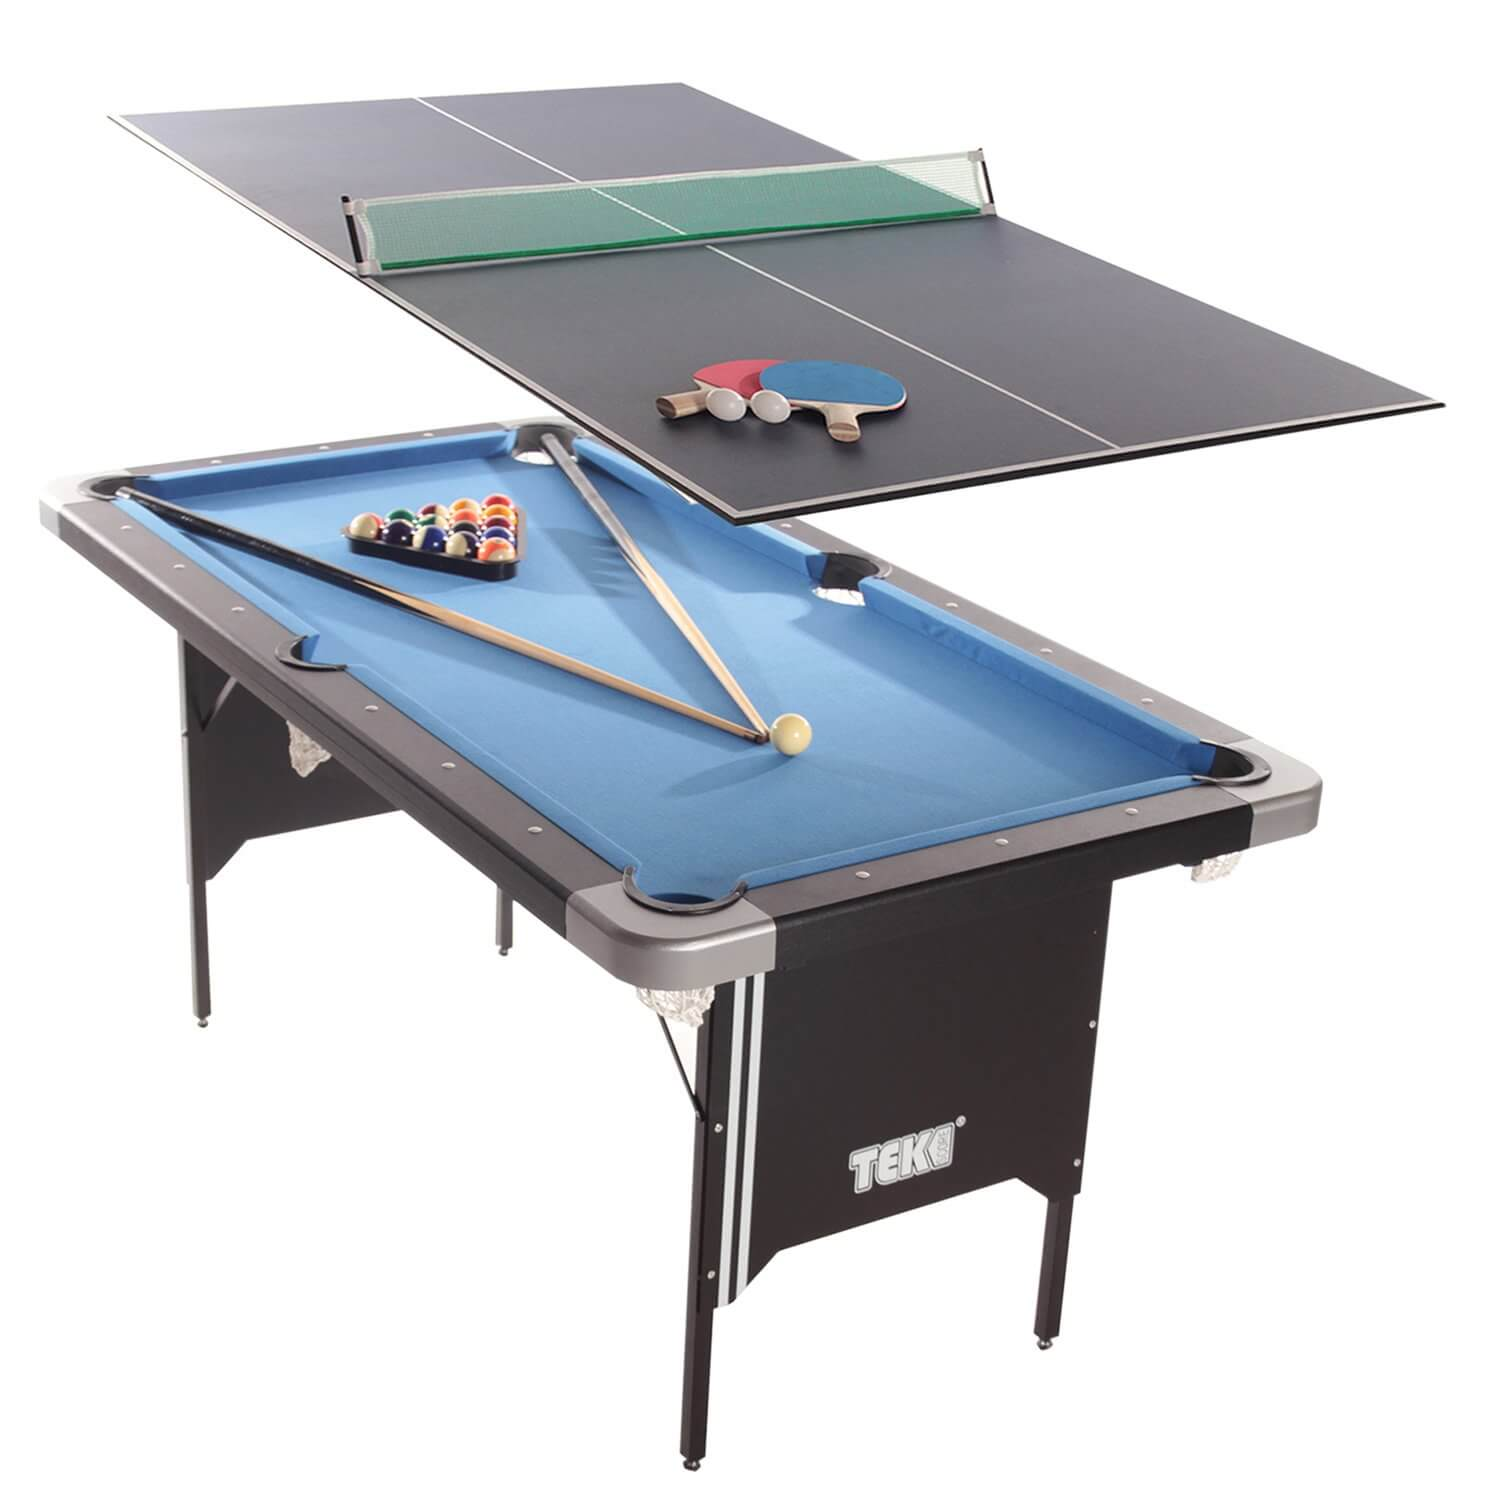 463ca753dff5 Tekscore Folding Leg Pool Table with Table Tennis Top